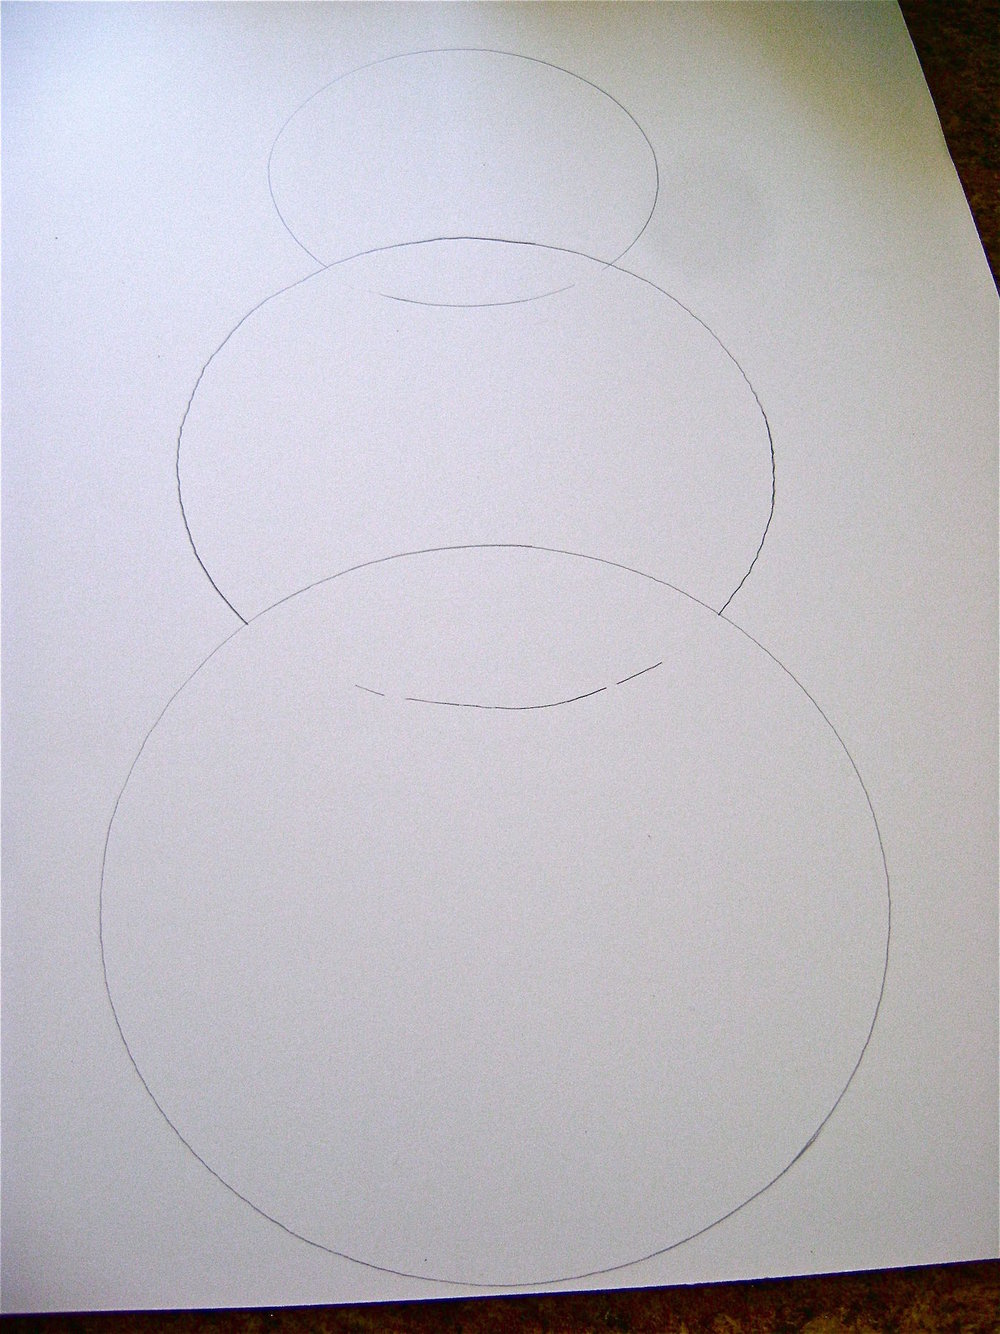 step 1 - The Snowman Lightly draw three different size circles on the foam board with a pencil, with each circle overlapping the one below it.